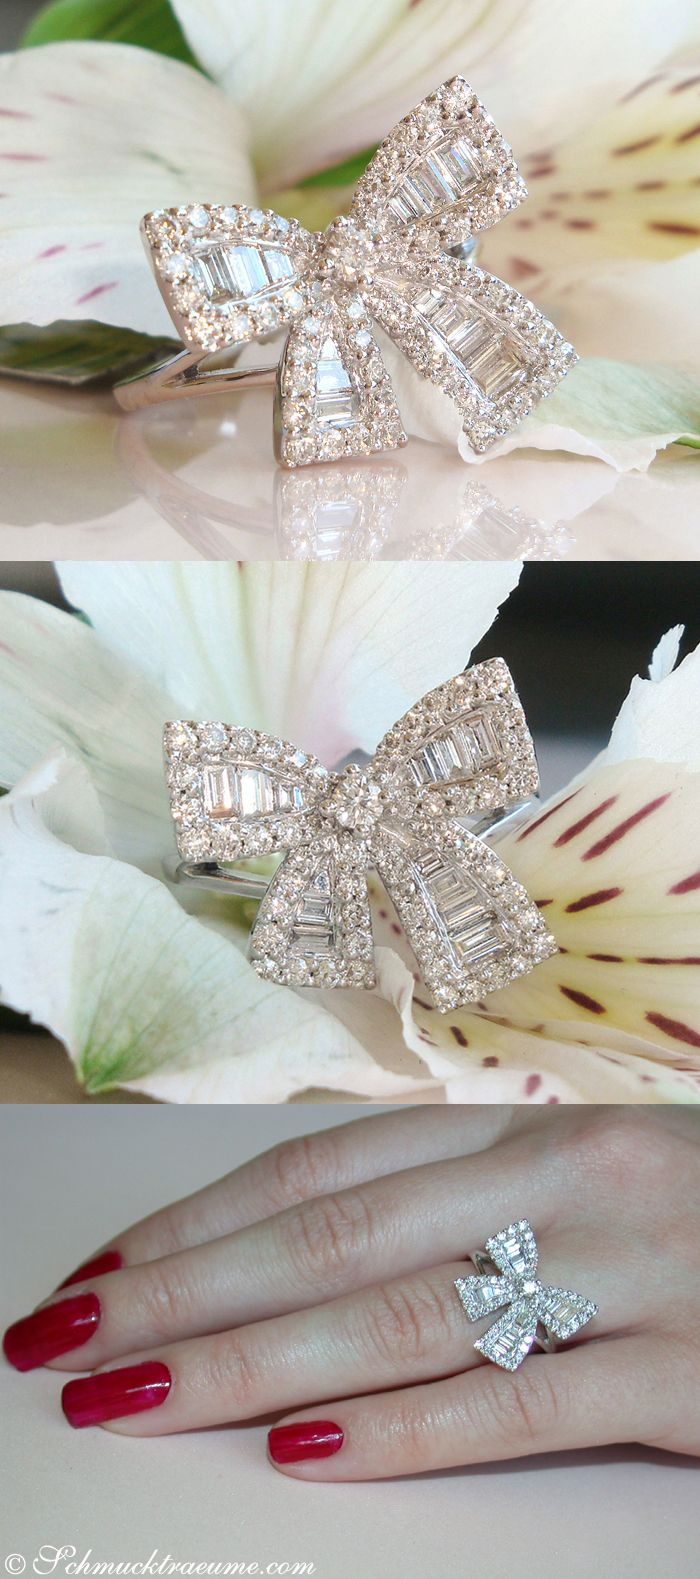 Cute Diamond Bow Ring, 1,11 cts. H-SI1/2, WG18K - Find out: schmucktraeume.com - Like: https://www.facebook.com/pages/Noble-Juwelen/150871984924926 - Contact: info@schmucktraeume.com